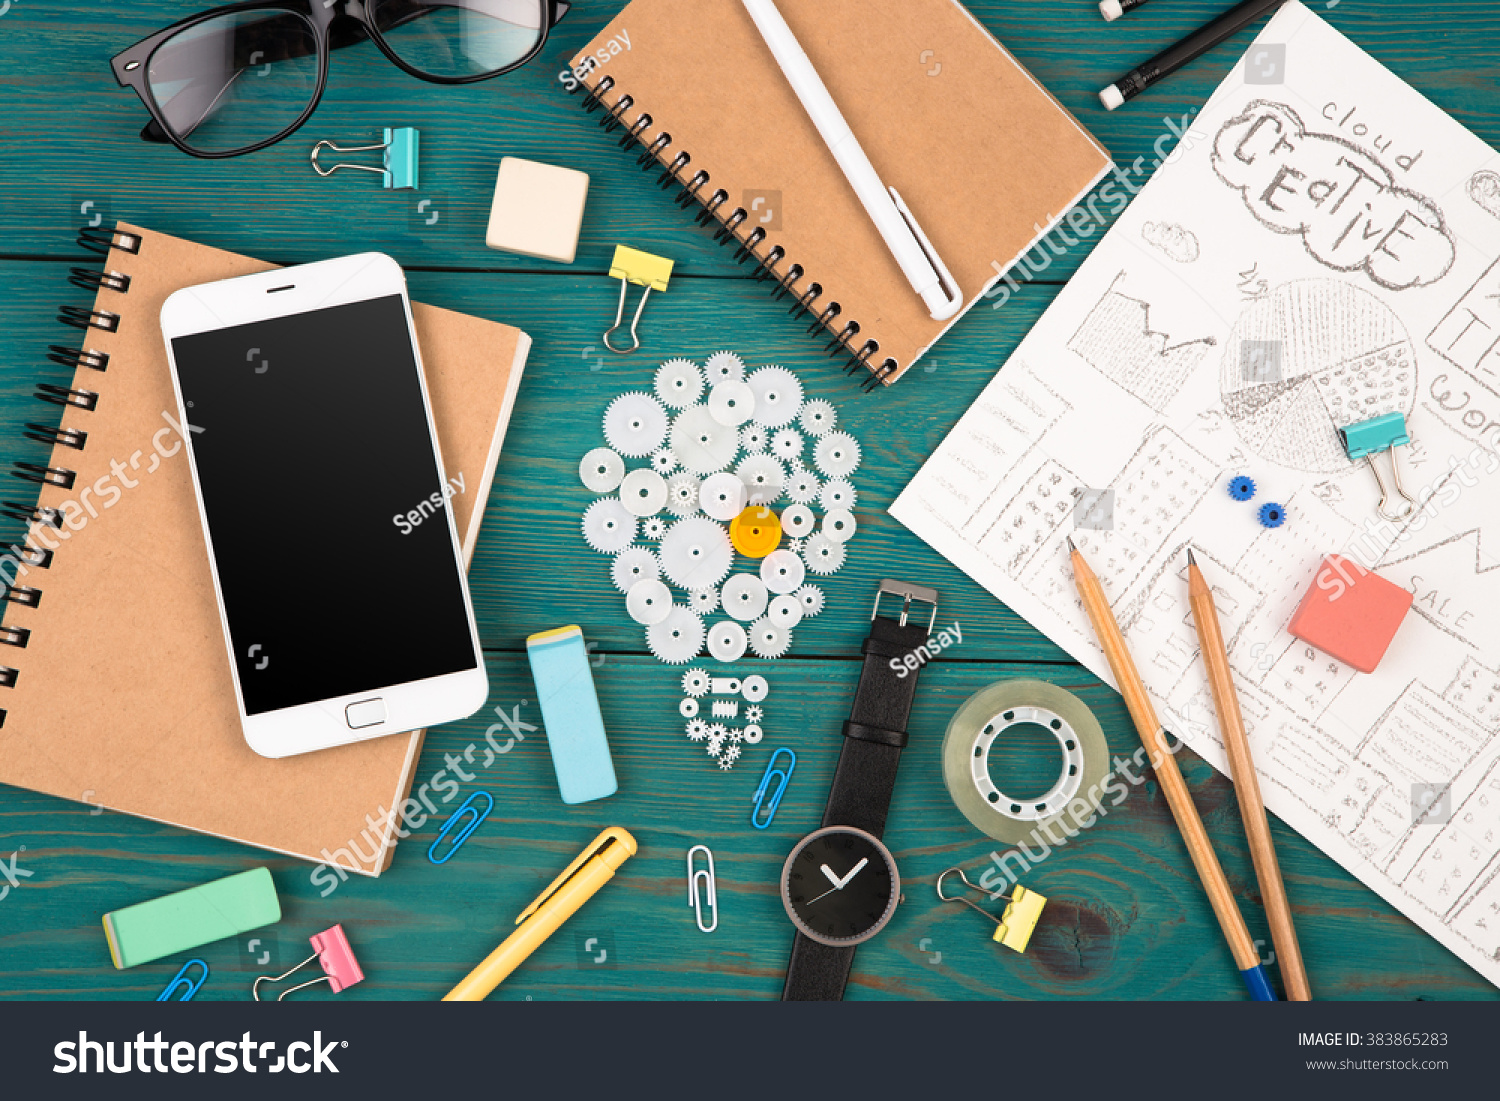 Idea Concept Phone Watch Notepads Pencils Stock Photo